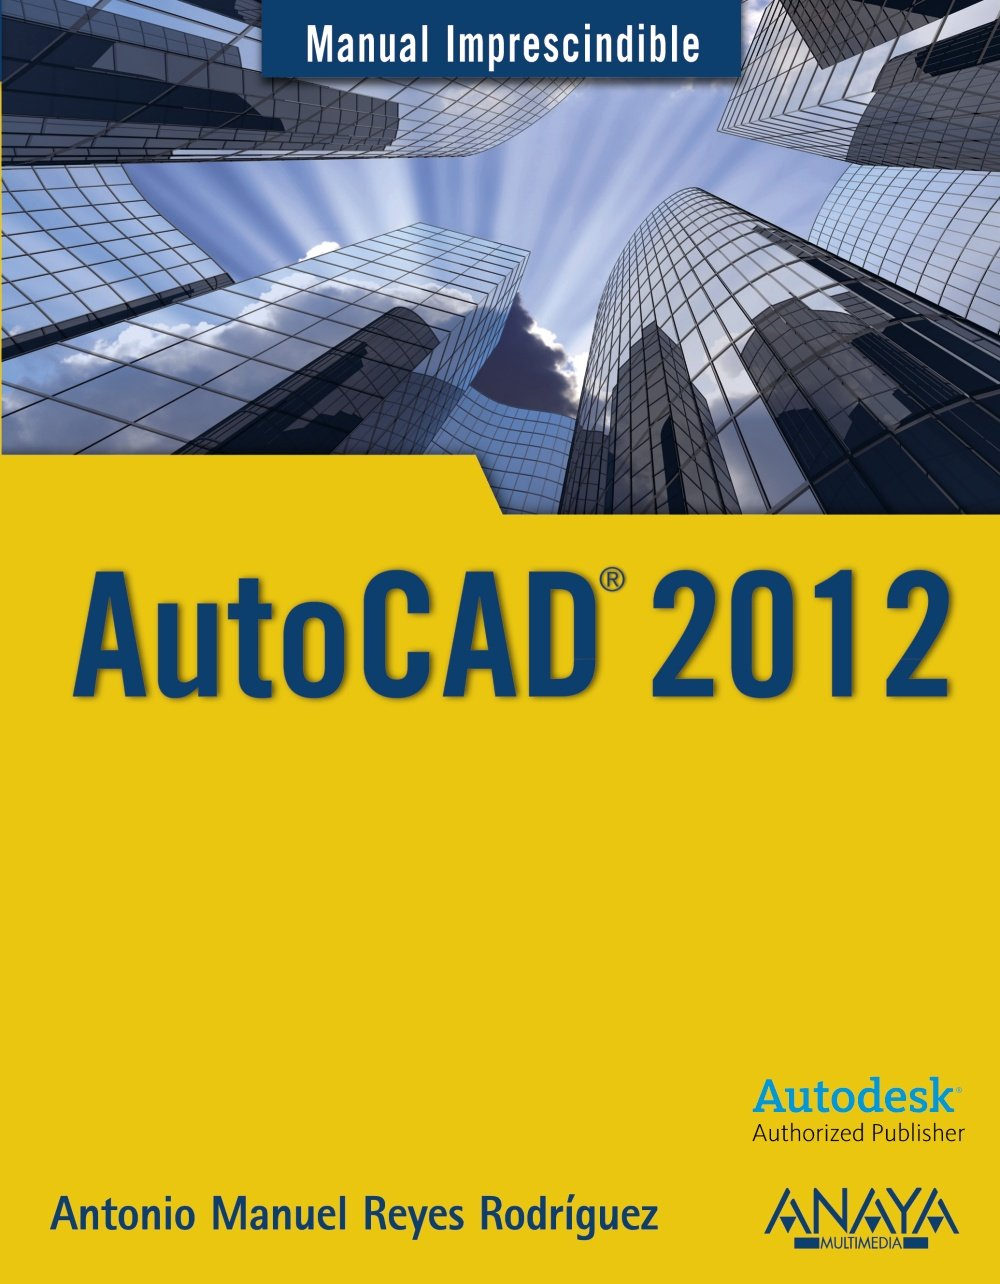 buy autocad 2012 manual imprescindible essential manuals book rh amazon in autocad 2015 manual autocad 2014 manual free download